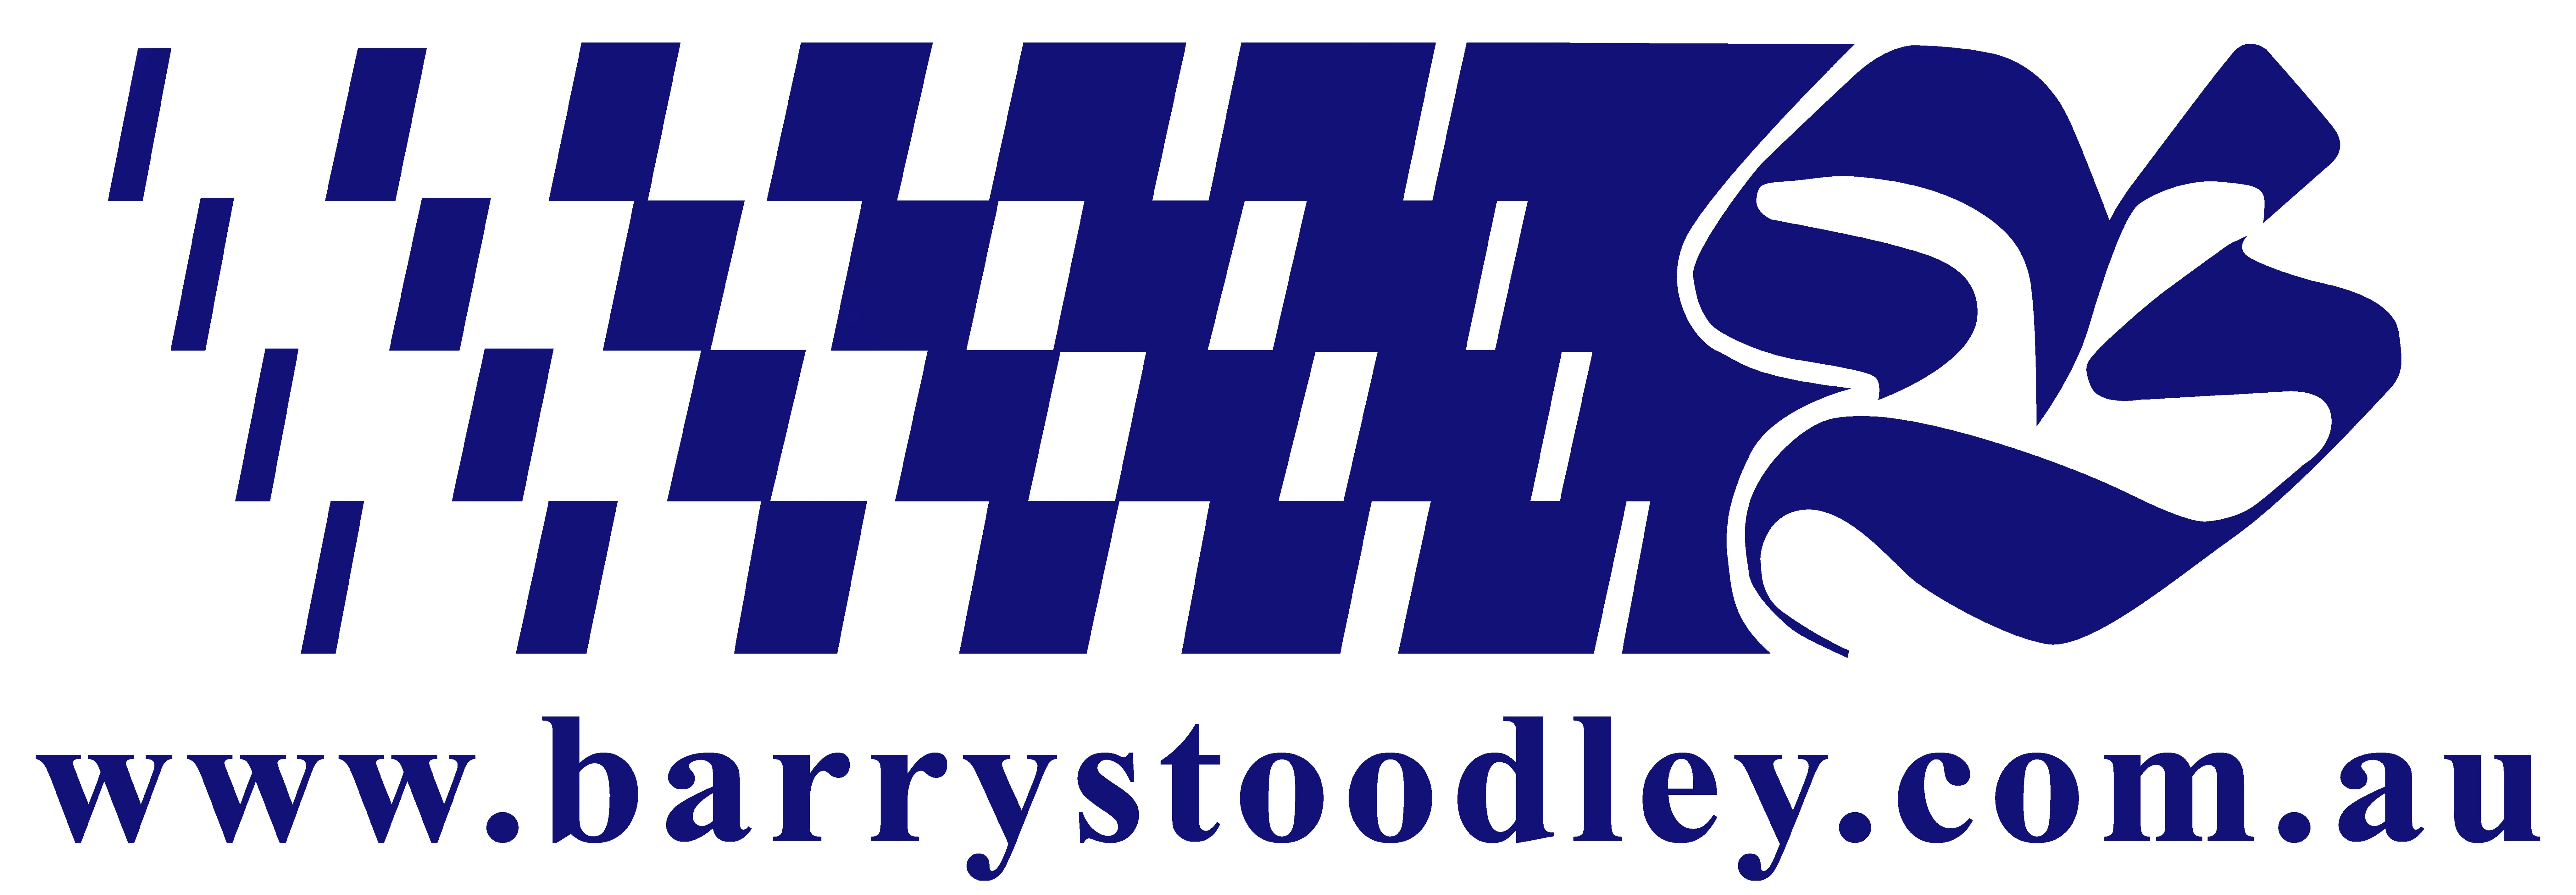 Barry Stoodley Pty Ltd